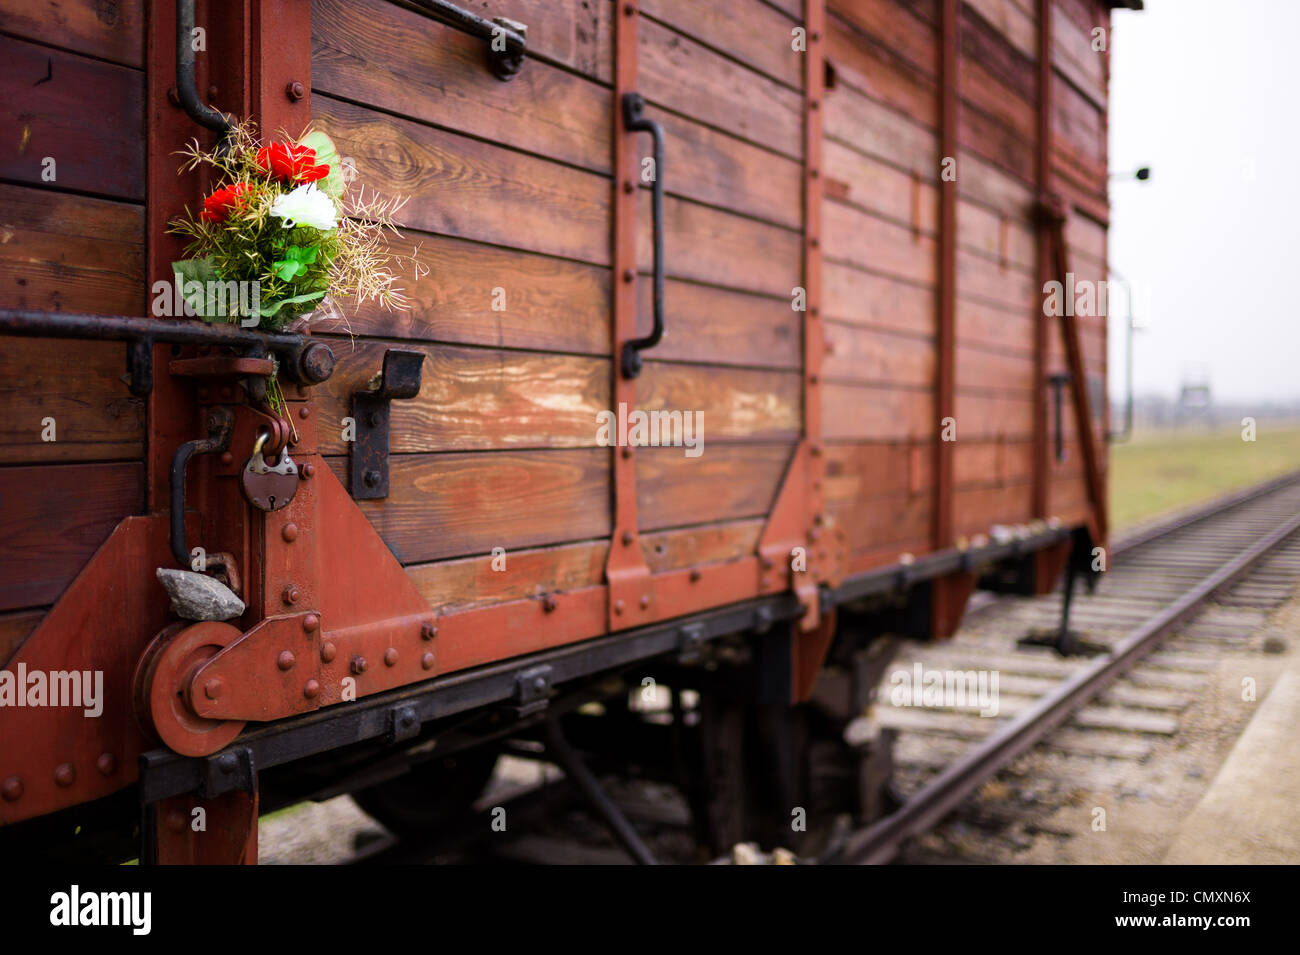 Memorial flowers placed on a prisoner transport carriage at Auschwitz II, Birkenau, Poland Stock Photo